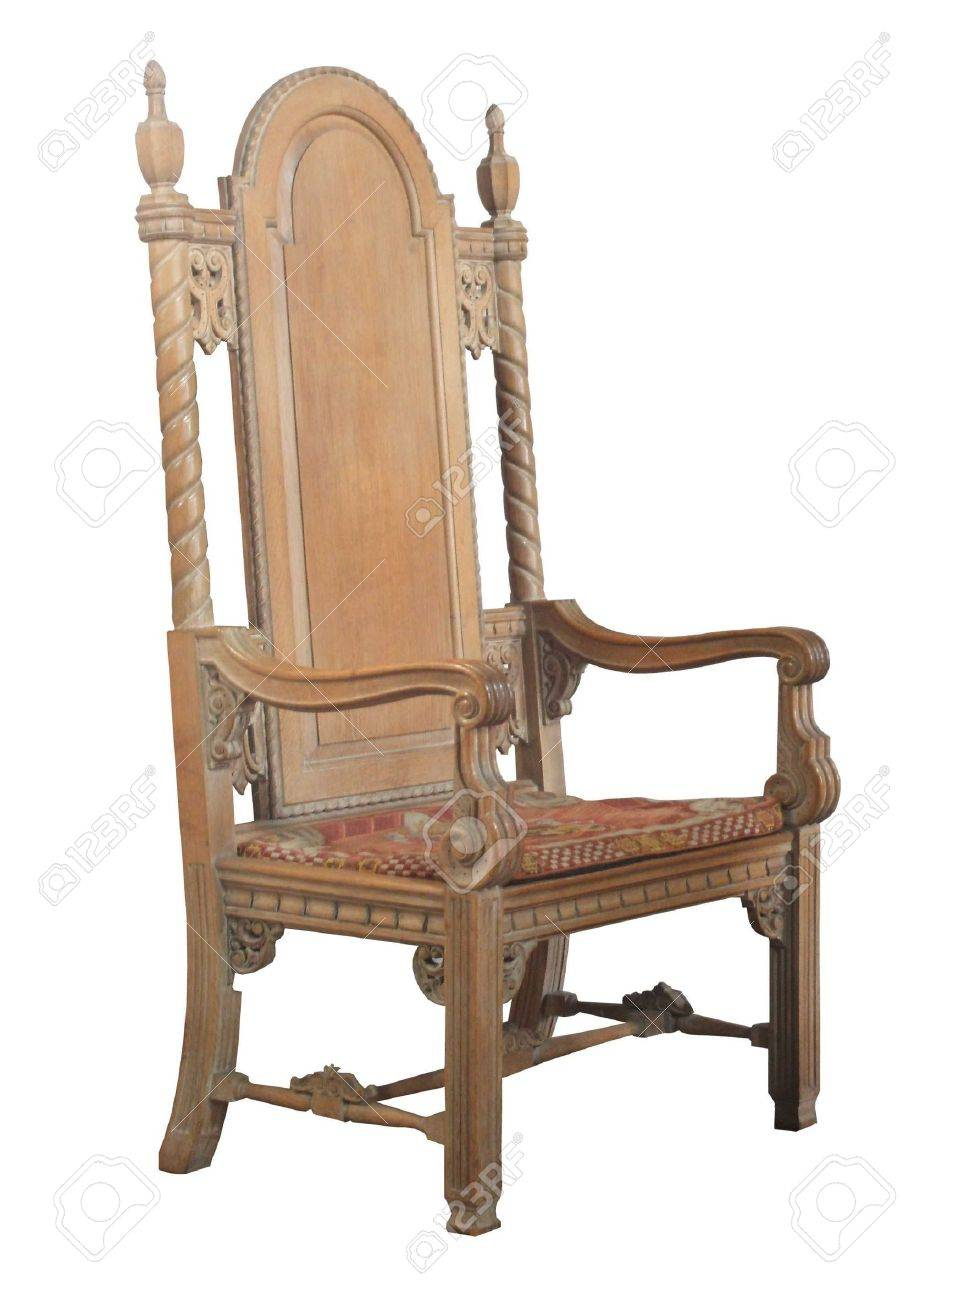 antique wooden chairs pictures chicco high chair cover replacement a large ancient church stock photo picture 5691604